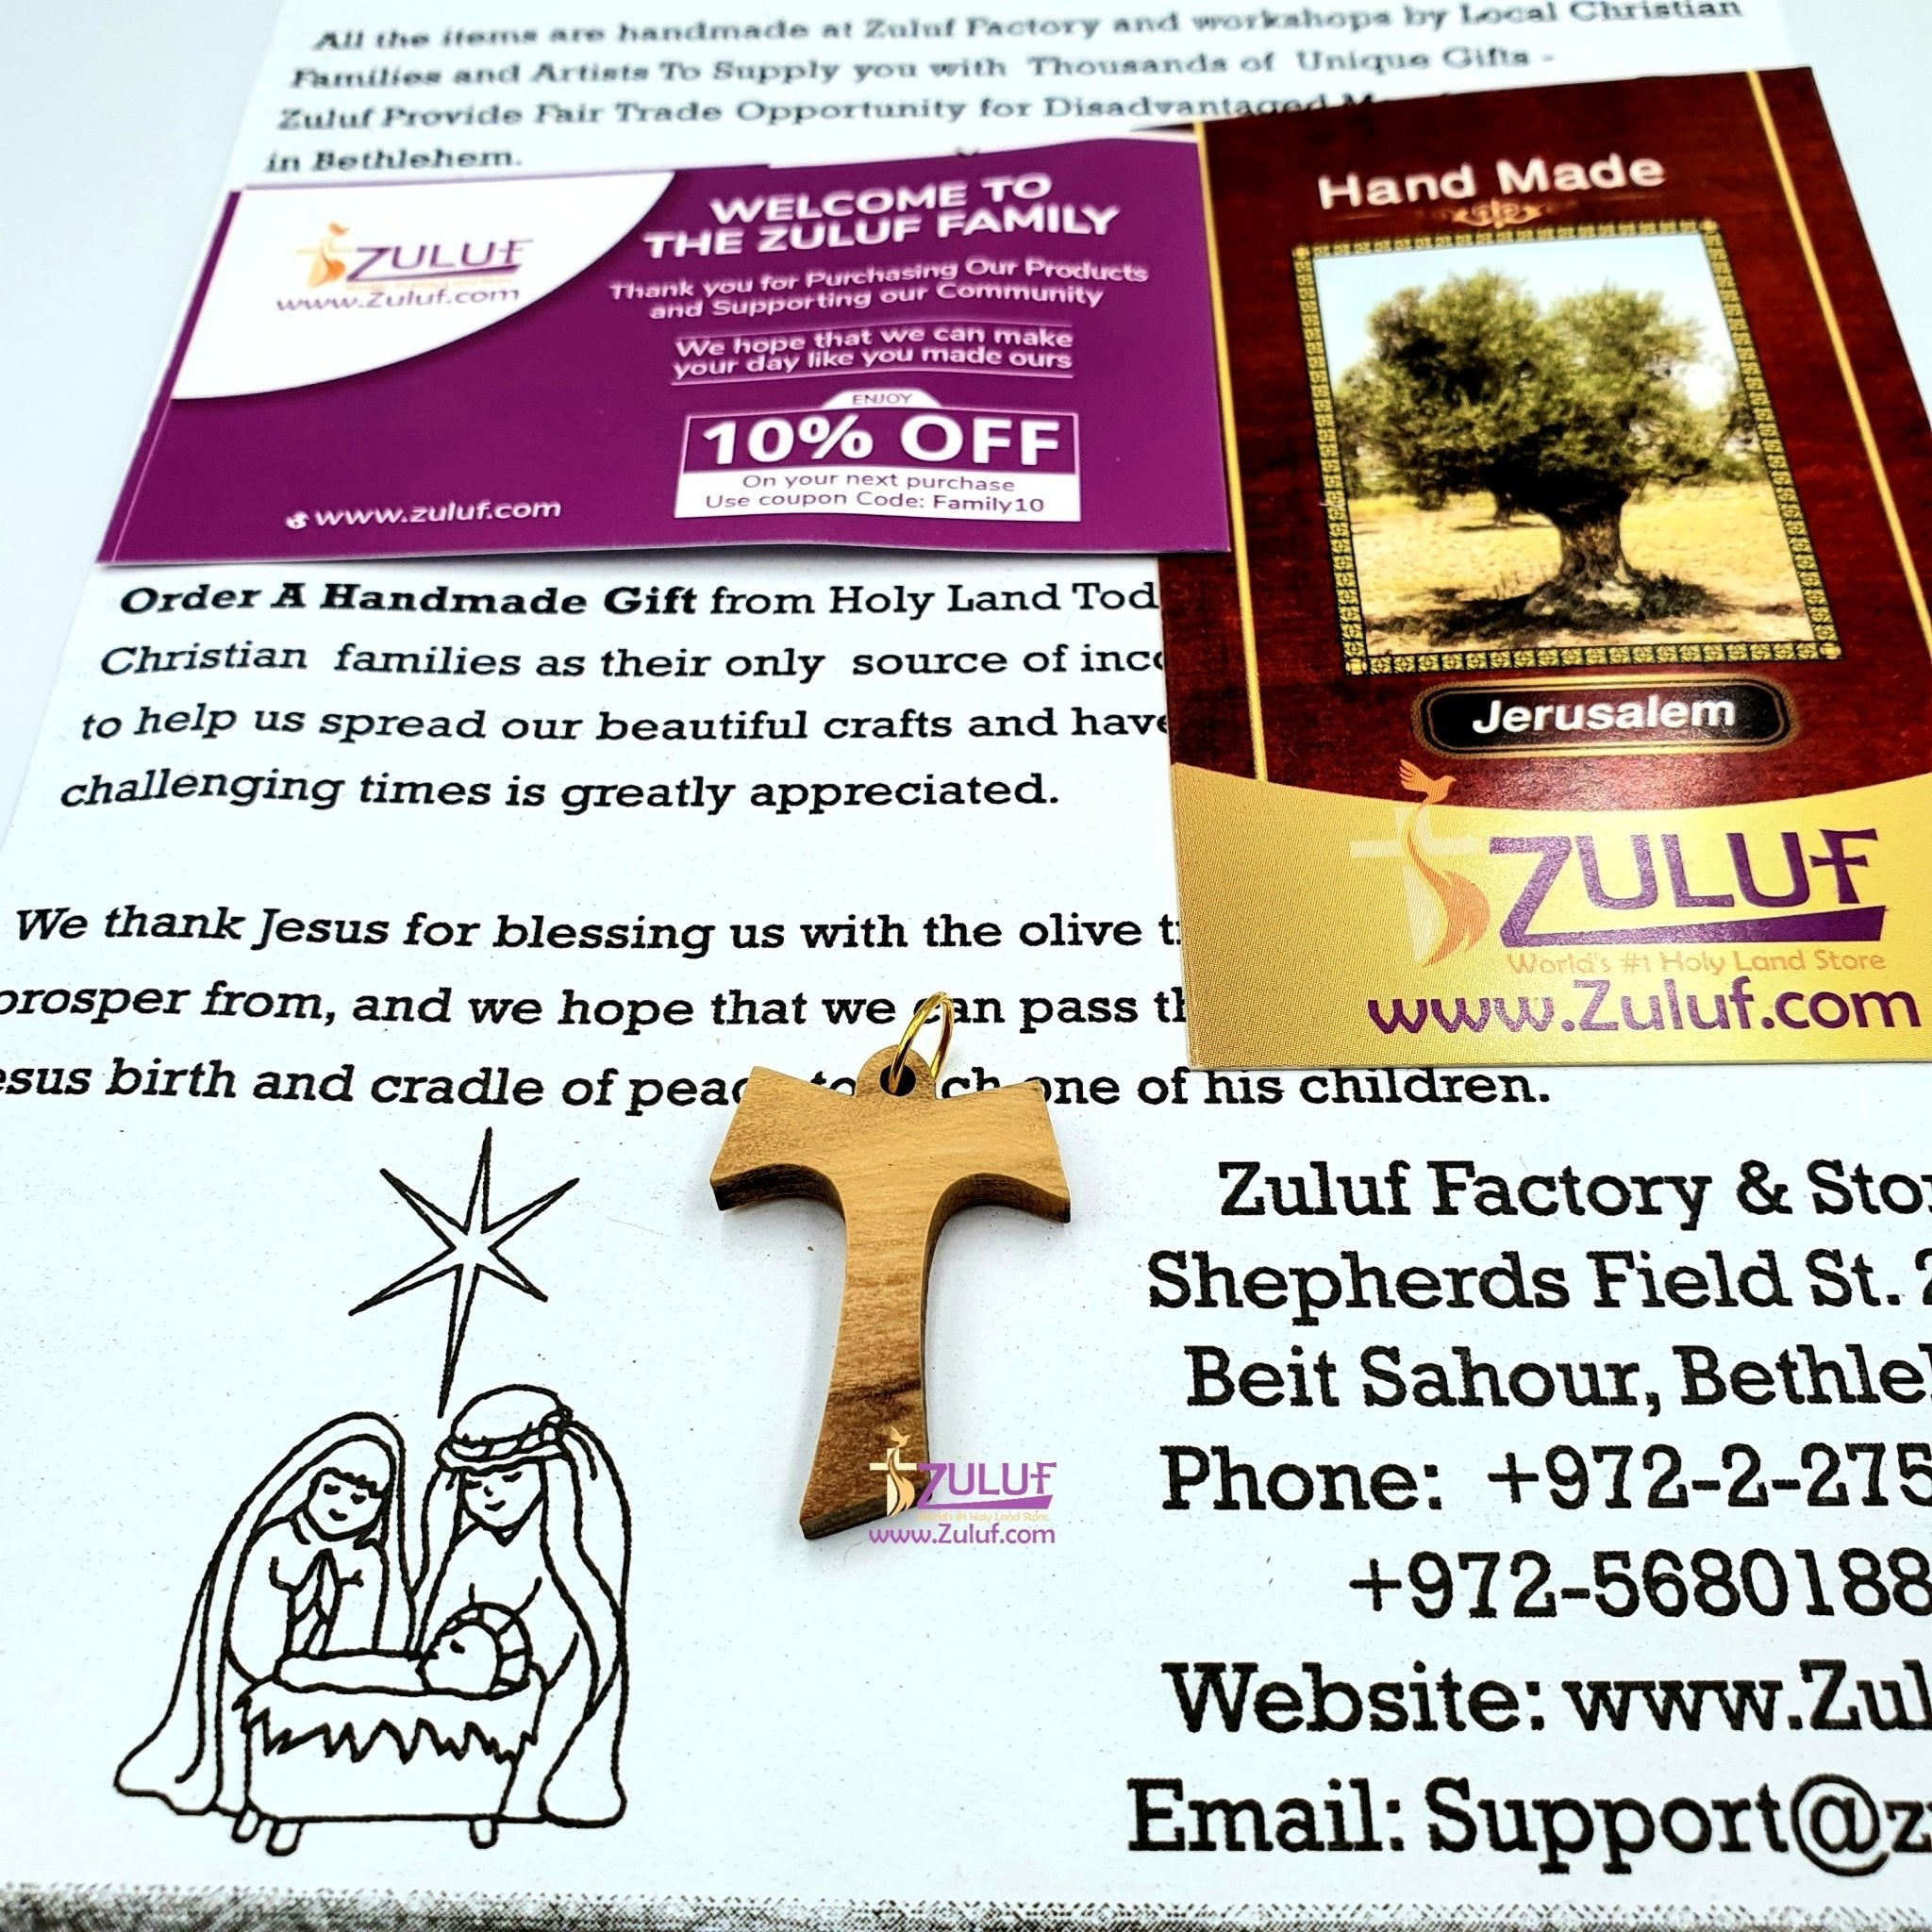 Olive Wood Tau Tao Cross Franciscan Pendant Hand Made Genuine Holy land - PEN164 - Zuluf